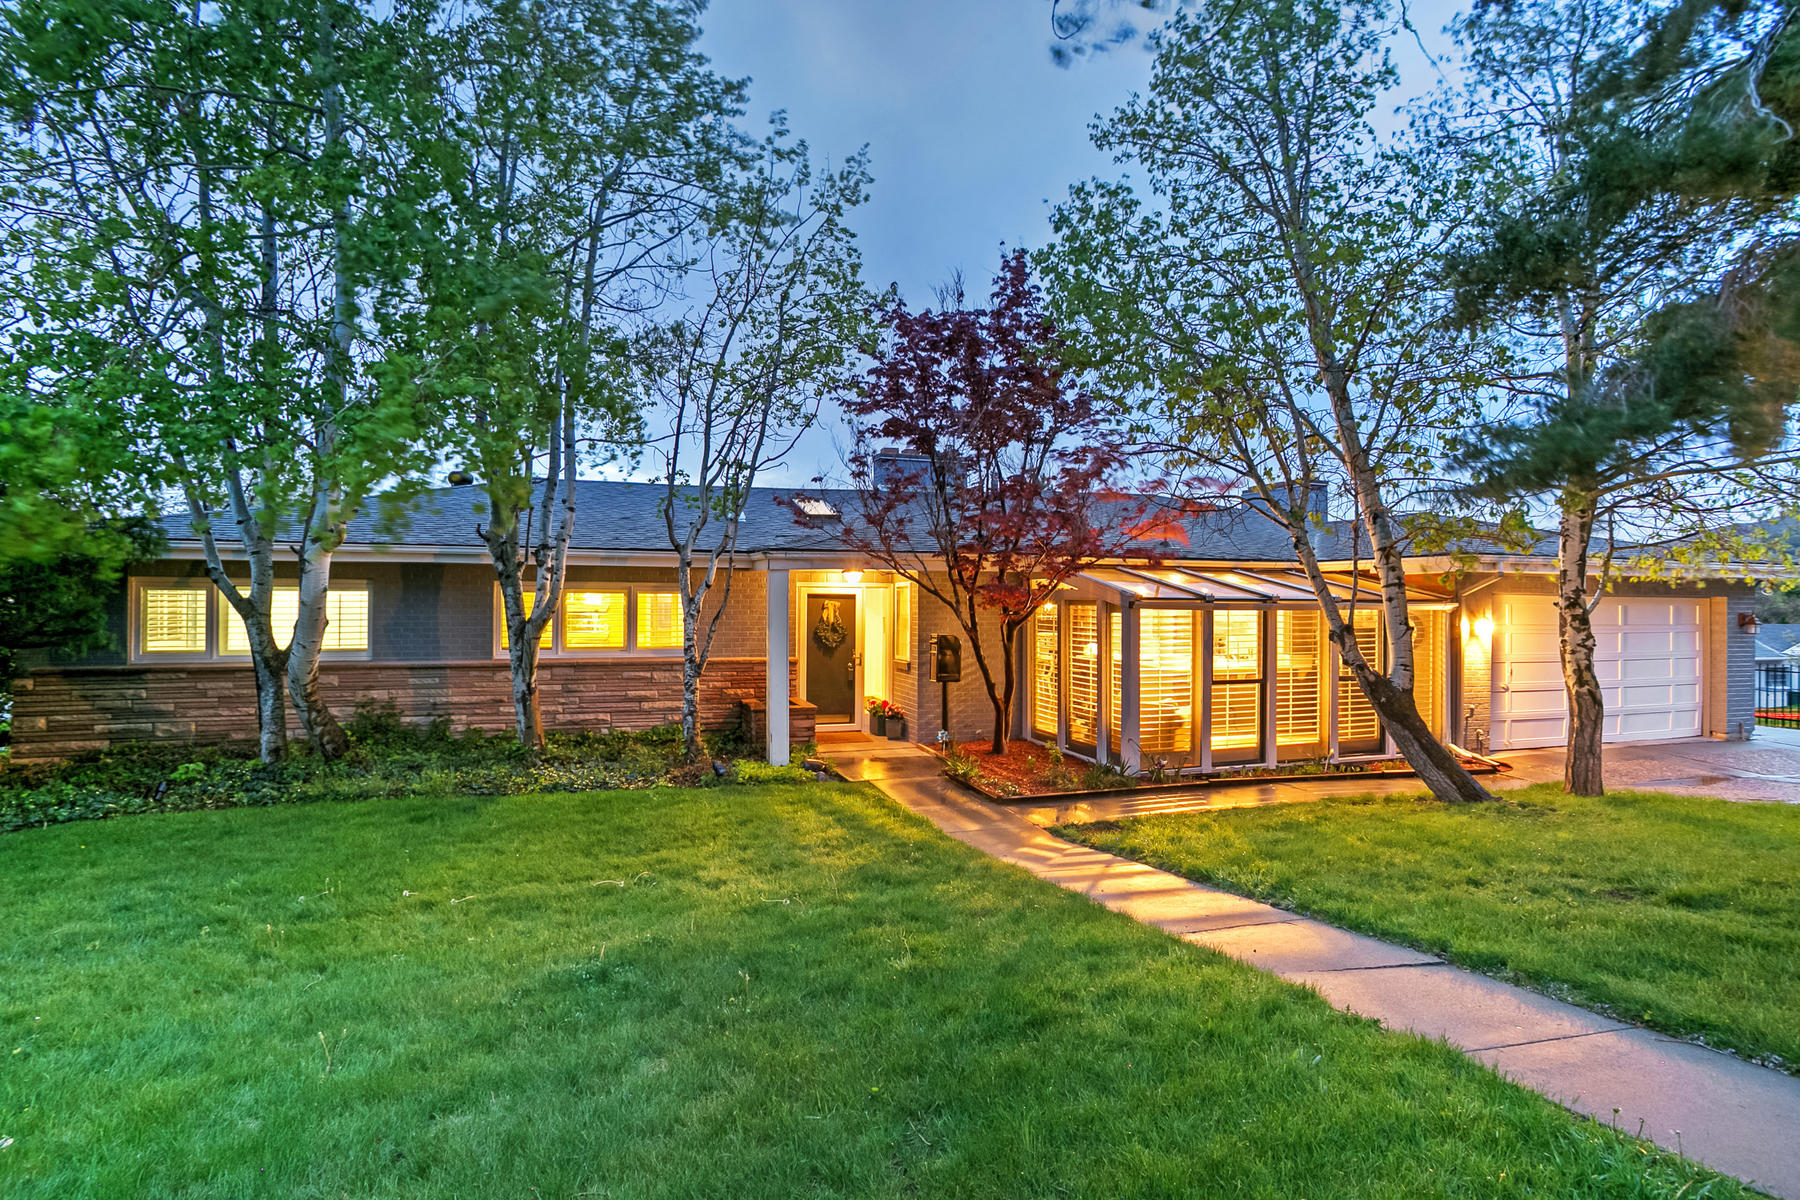 Single Family Home for Sale at Rare Opportunity in the Heart of St. Mary's 1098 S Augusta Way Salt Lake City, Utah, 84108 United States